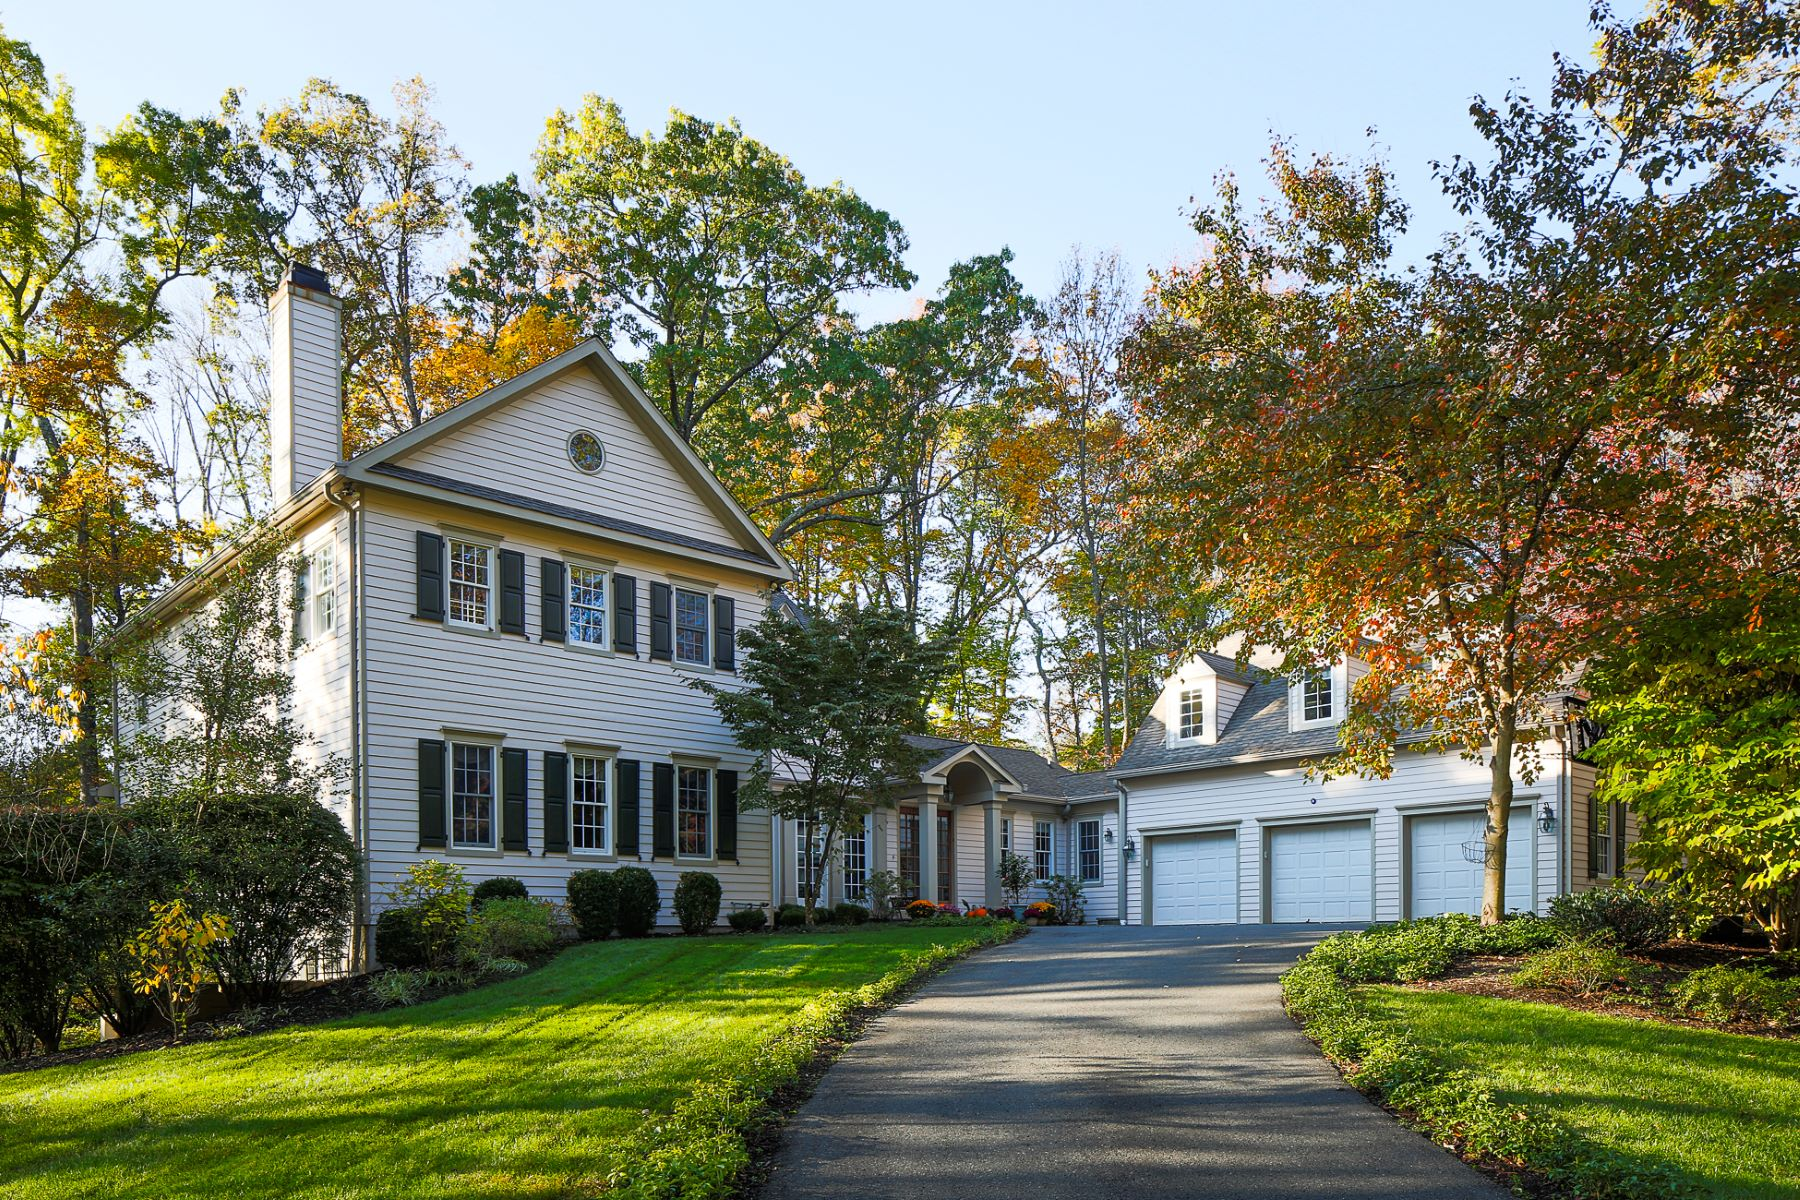 Property for Sale at Classic Styling Meets Gracious, Comfortable Living 170 Lambert Drive, Princeton, New Jersey 08540 United States